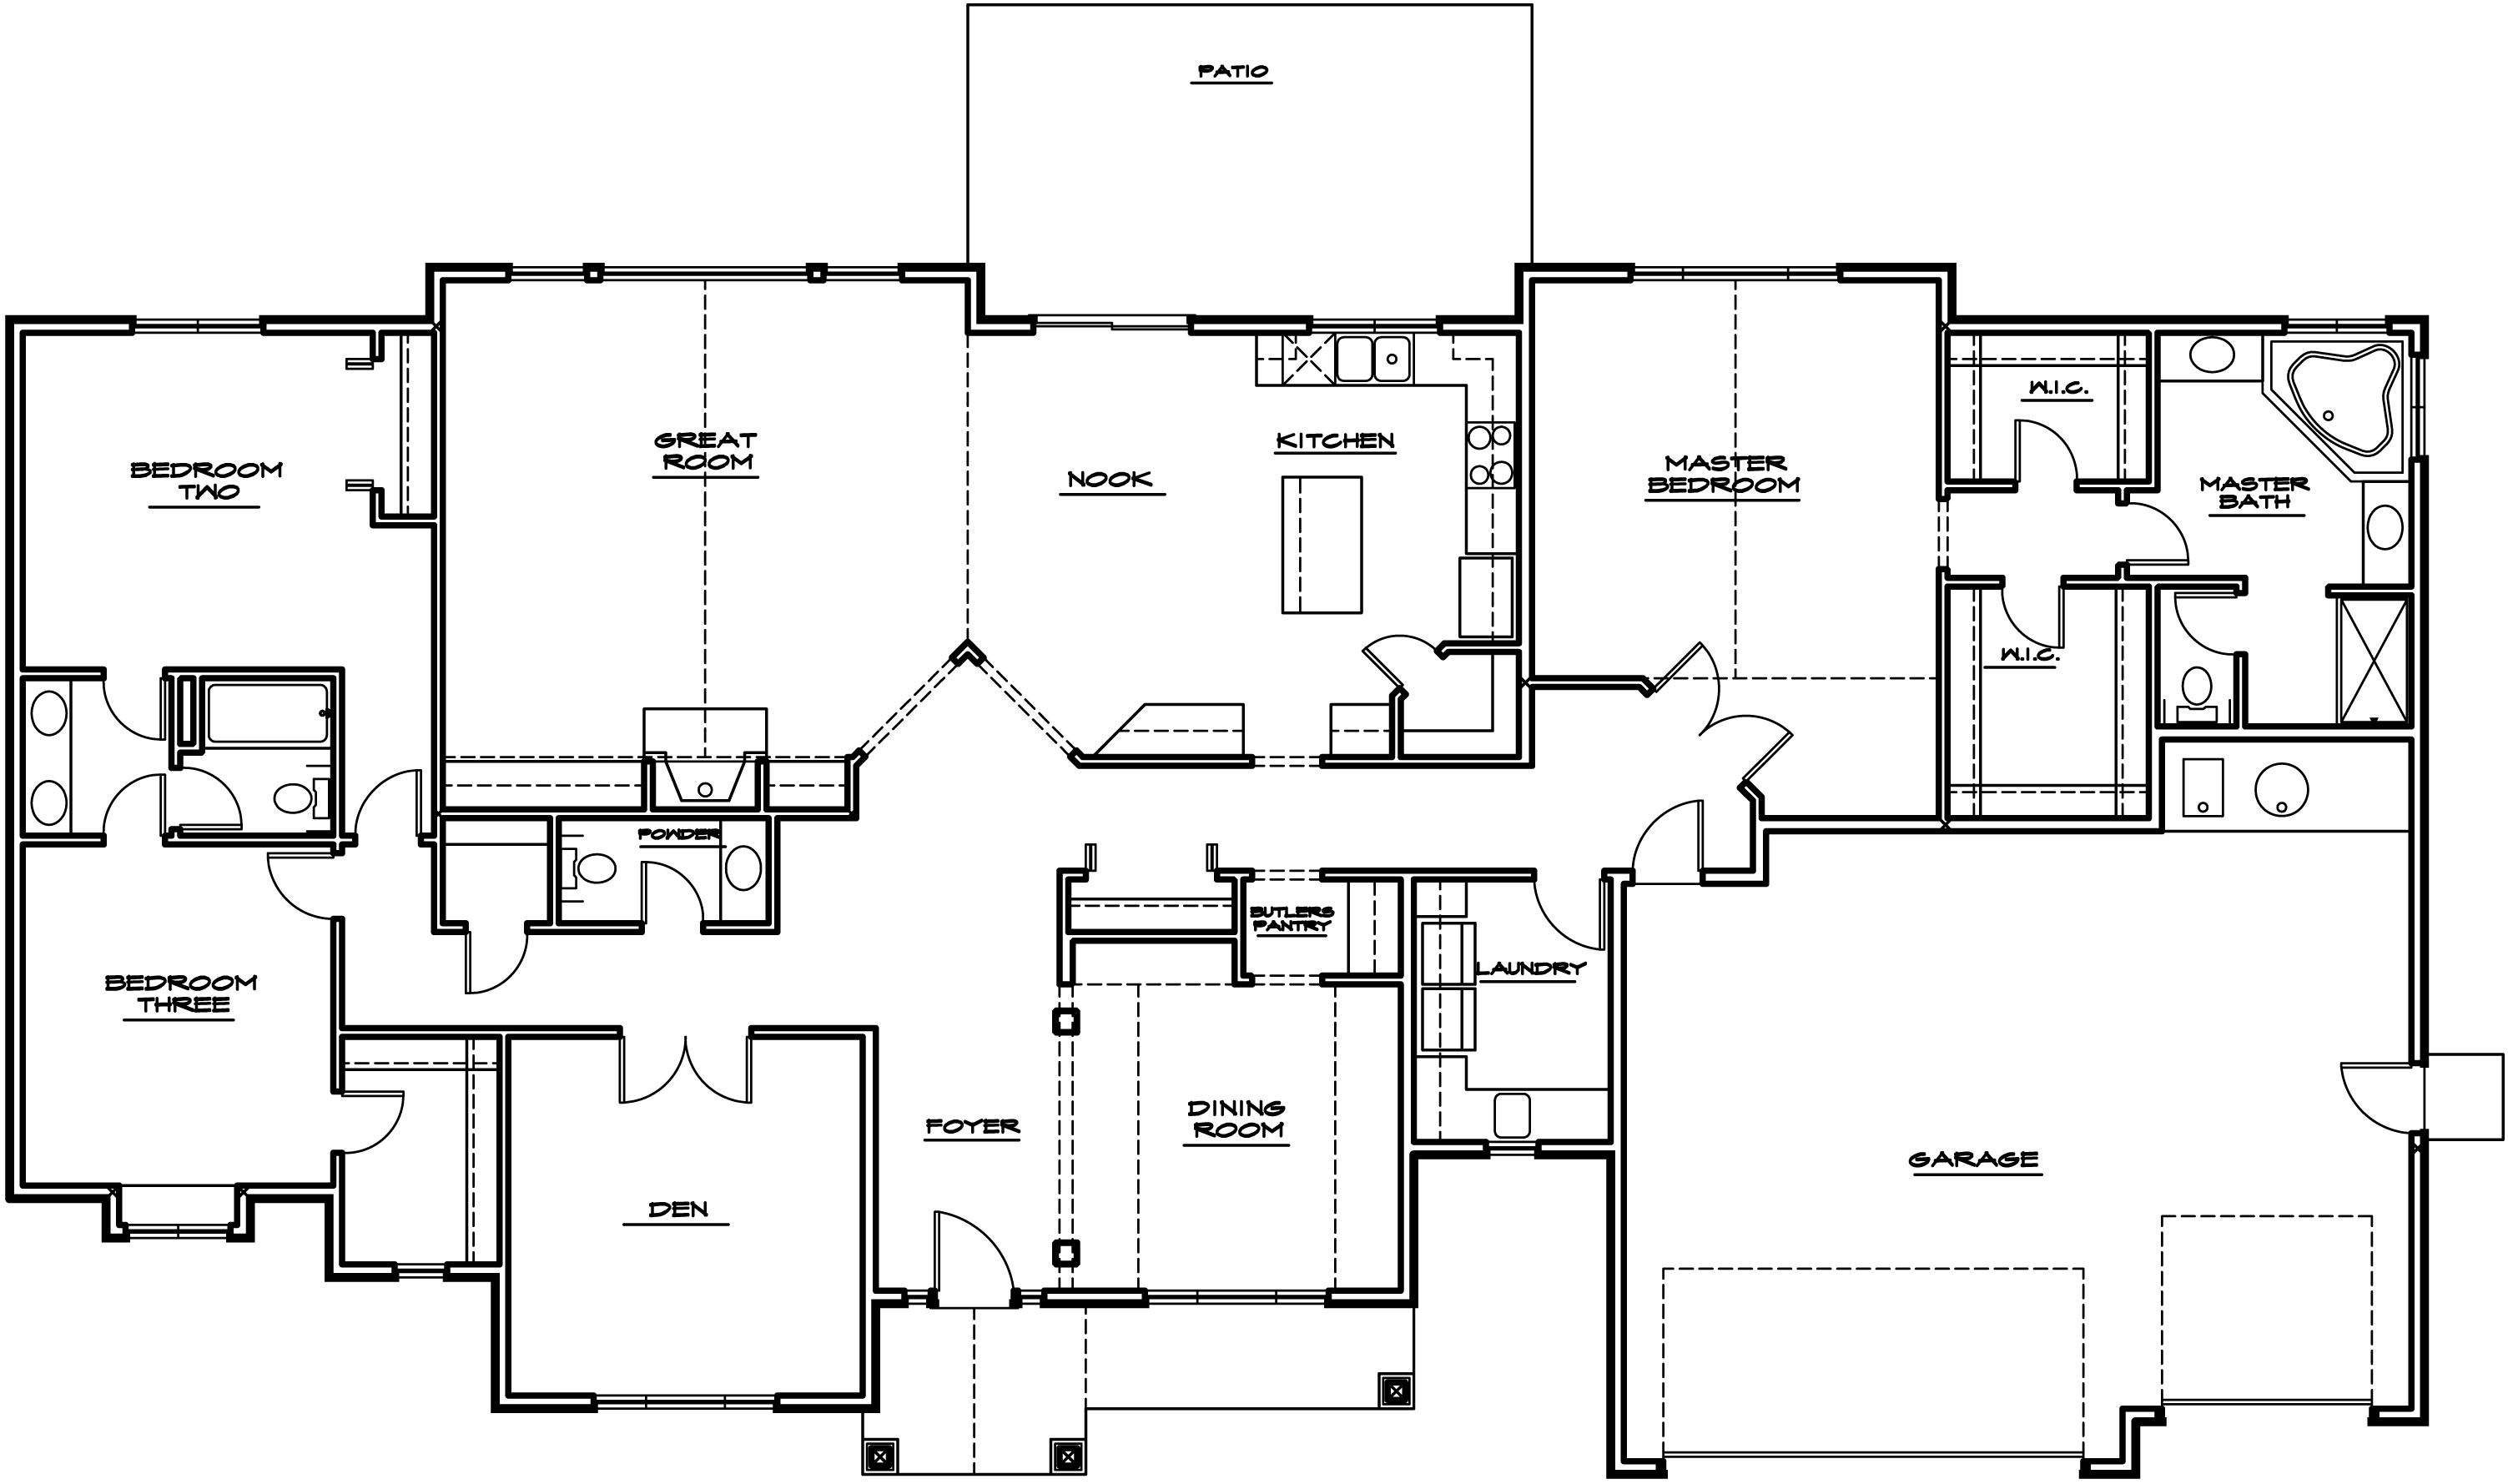 Rambler house plans images for House blueprints